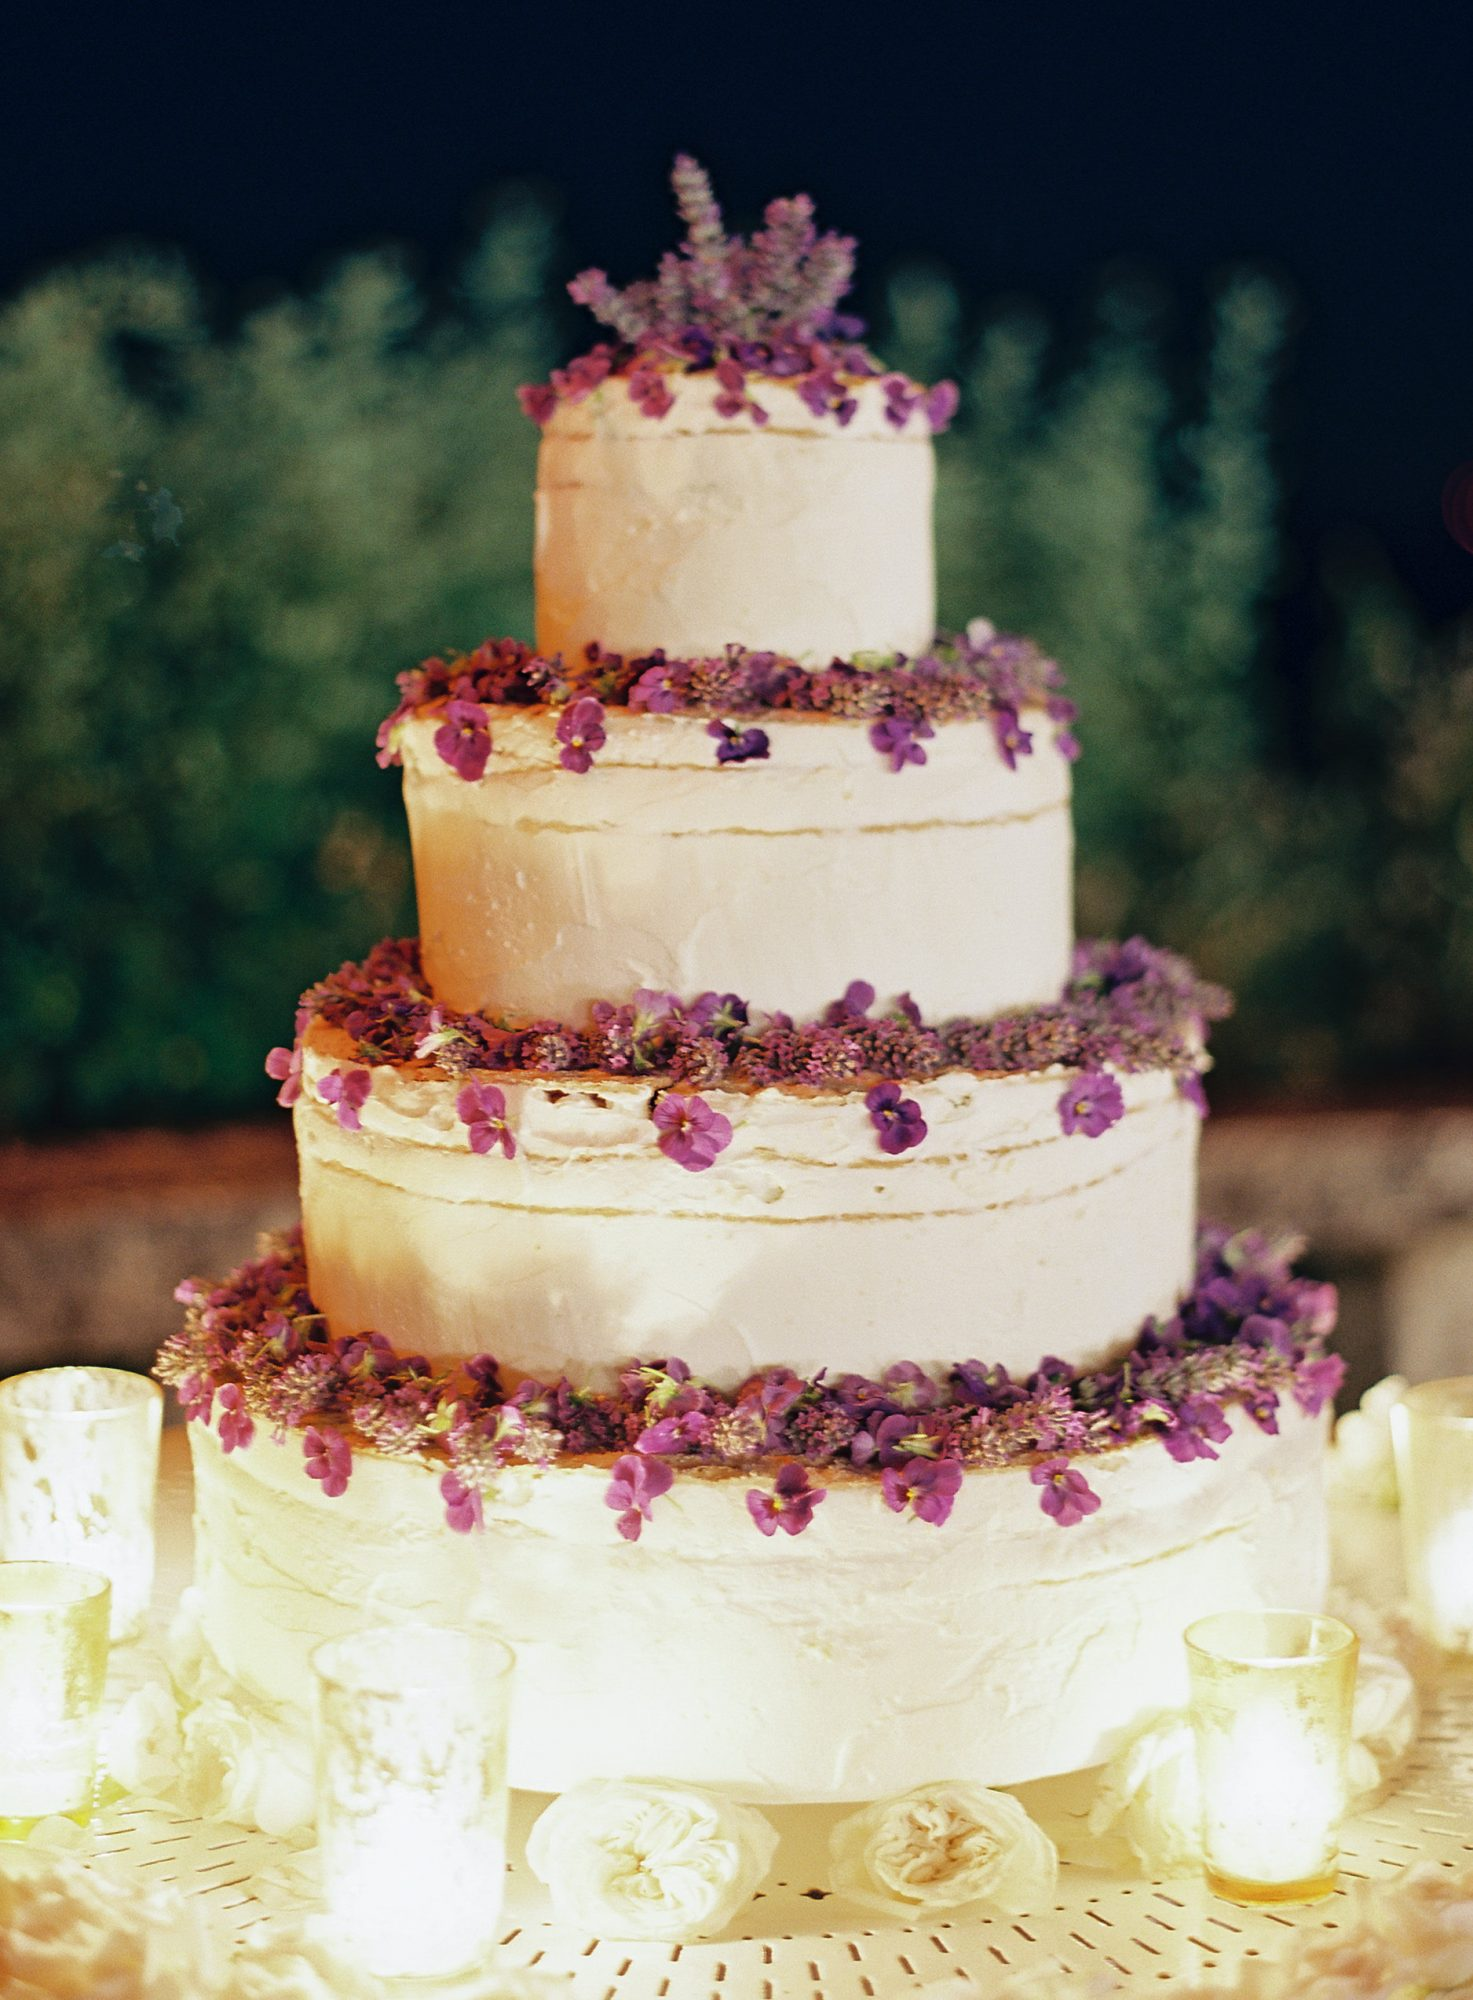 four tiered cake with blackberries and lavender mascarpone